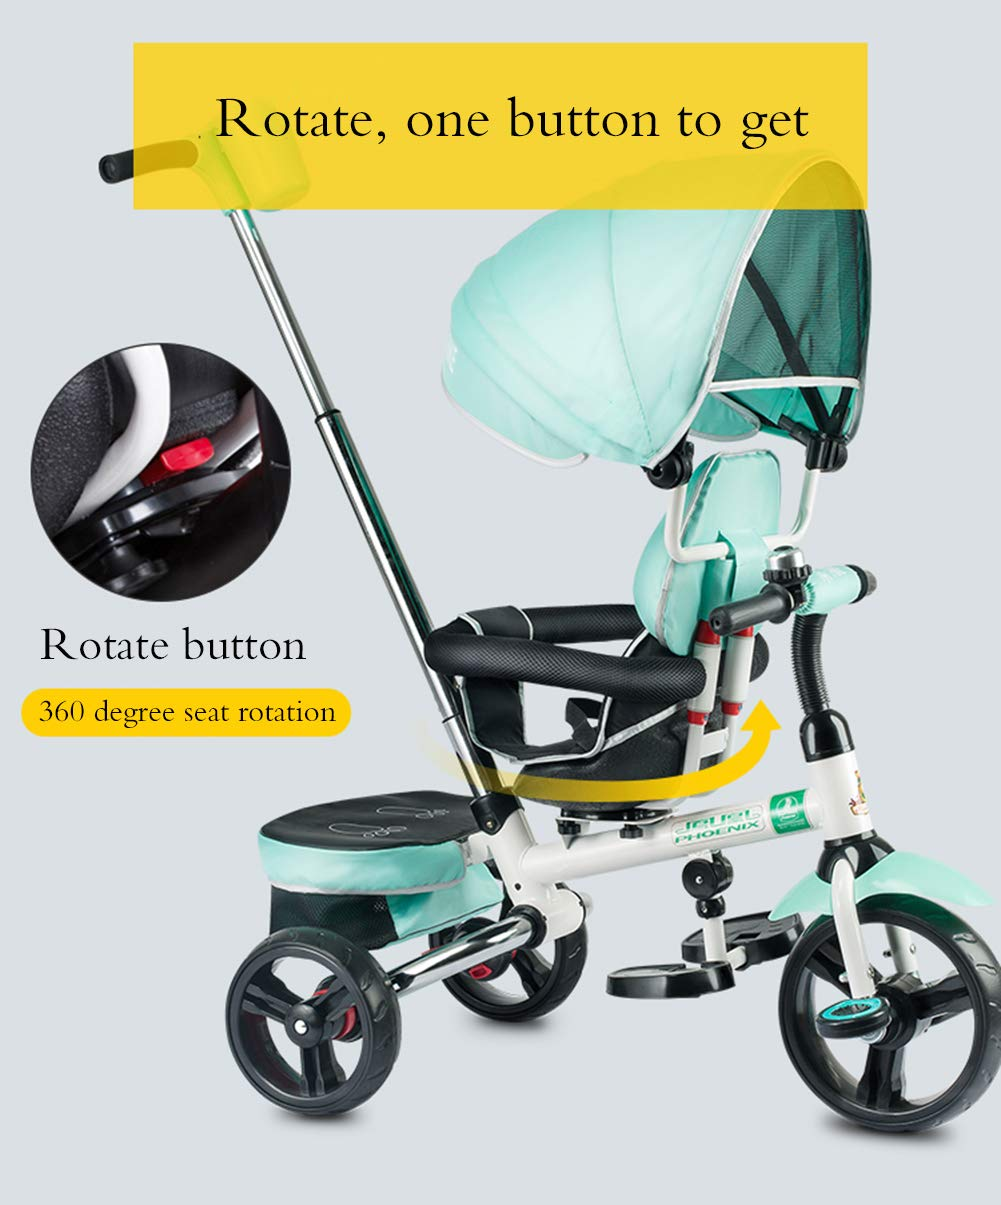 Triciclo Per Bambini, Bilanciere Per Bambini Con Sedile Reversibile a 360 ° Ruota In Gomma Per Copertura Antipioggia Barra Di Protezione In Metallo Adatta Per Bambini e Ragazzi Dai 2 Ai 5 Anni Giocatt YYY ✅ 4-in-1 multi-function: for steering three-wheeled baby bicycle, thicker push rod PLUS steering system, more flexible seat, 360-degree swivel chair, wide body and awning can be adjusted to the third gear. As the child grows, the tricycle can Adjust to the fourth level. ✅ Durable material: This thrust tricycle is made of high-quality carbon steel, with excellent strength, light resistance and anti-flaking adjustable awning. Encrypted Oxford cloth can block harmful UV. Mesh ventilation SUV is as comfortable as driver's seat. ✅Safe design: high back support stable three-way frame three-point seat belt and foam covered guardrail to prevent the hollow wheel from sliding or excessive tilting to prevent clamping feet. The rear wheel adopts double brake system and is equipped with high-density titanium empty wheel explosion-proof 2